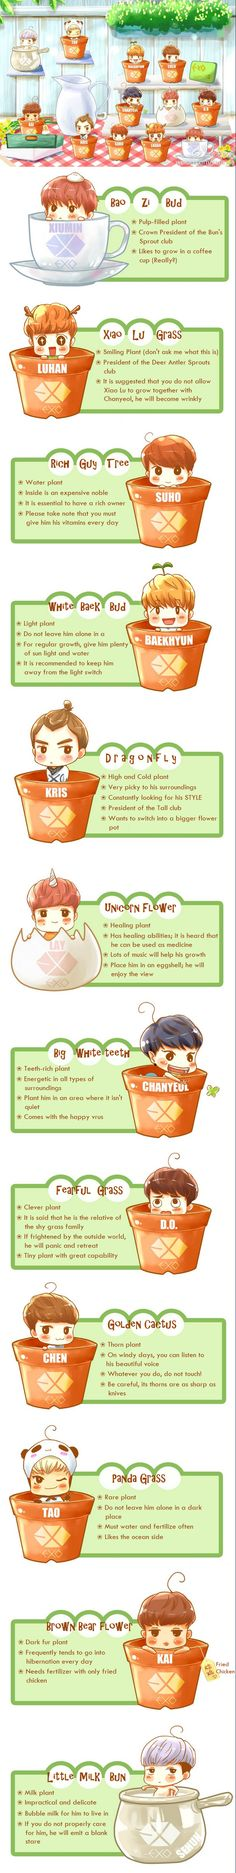 EXO as plants, and how to take care of them. But why shouldn't the Luhan plant be near the Channie plant?